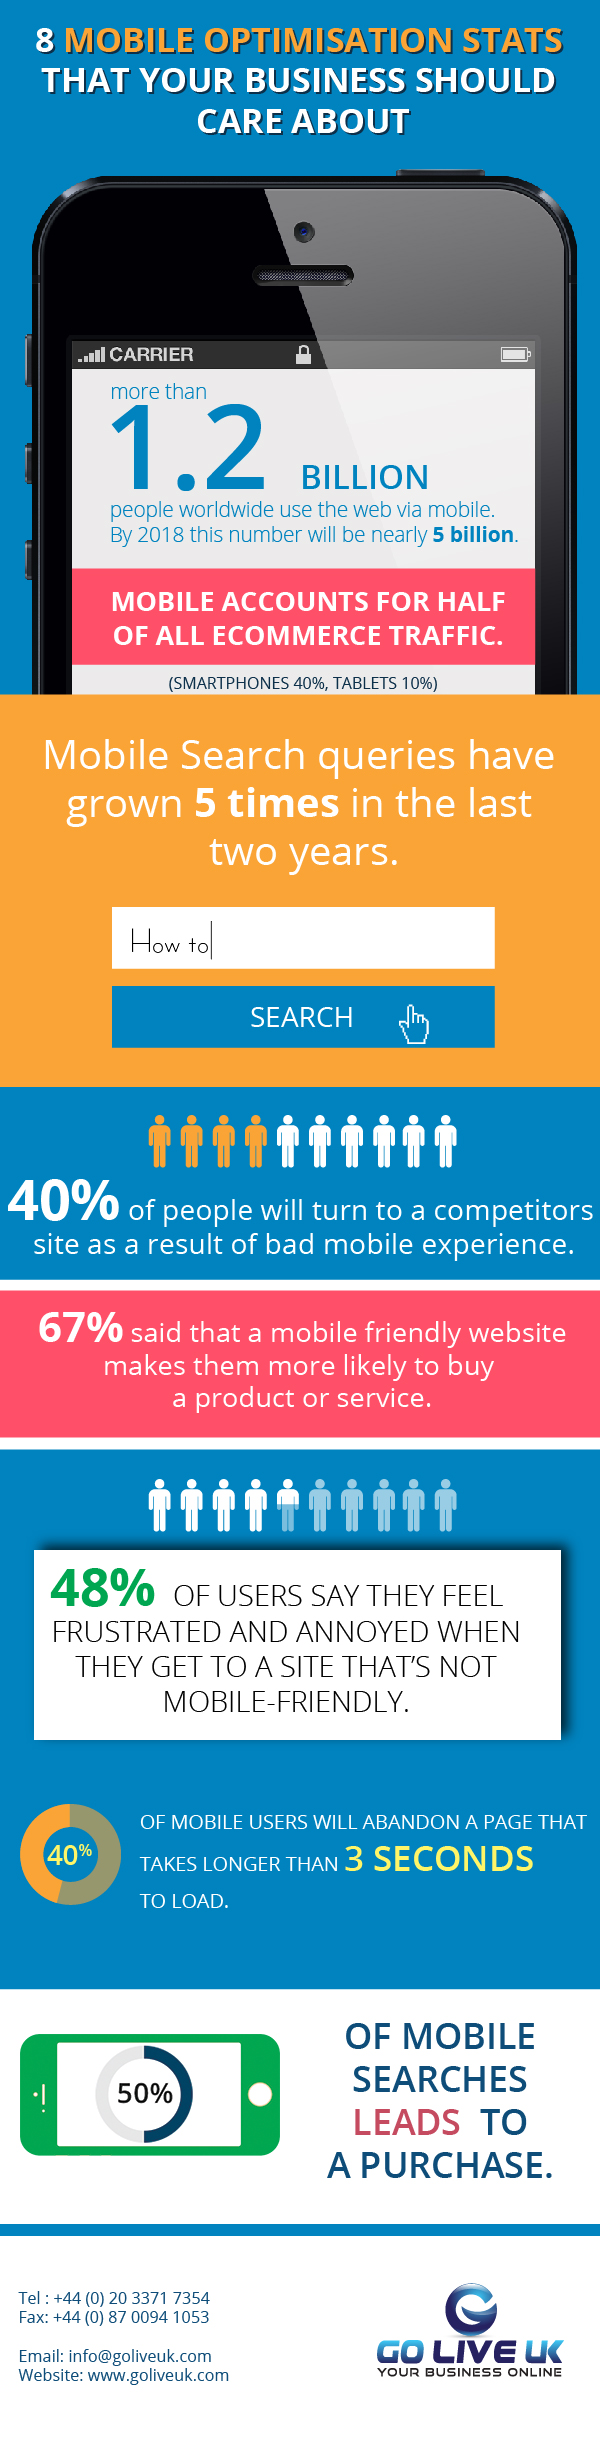 8 Mobile Optimisation Stats Your Business Should Care About